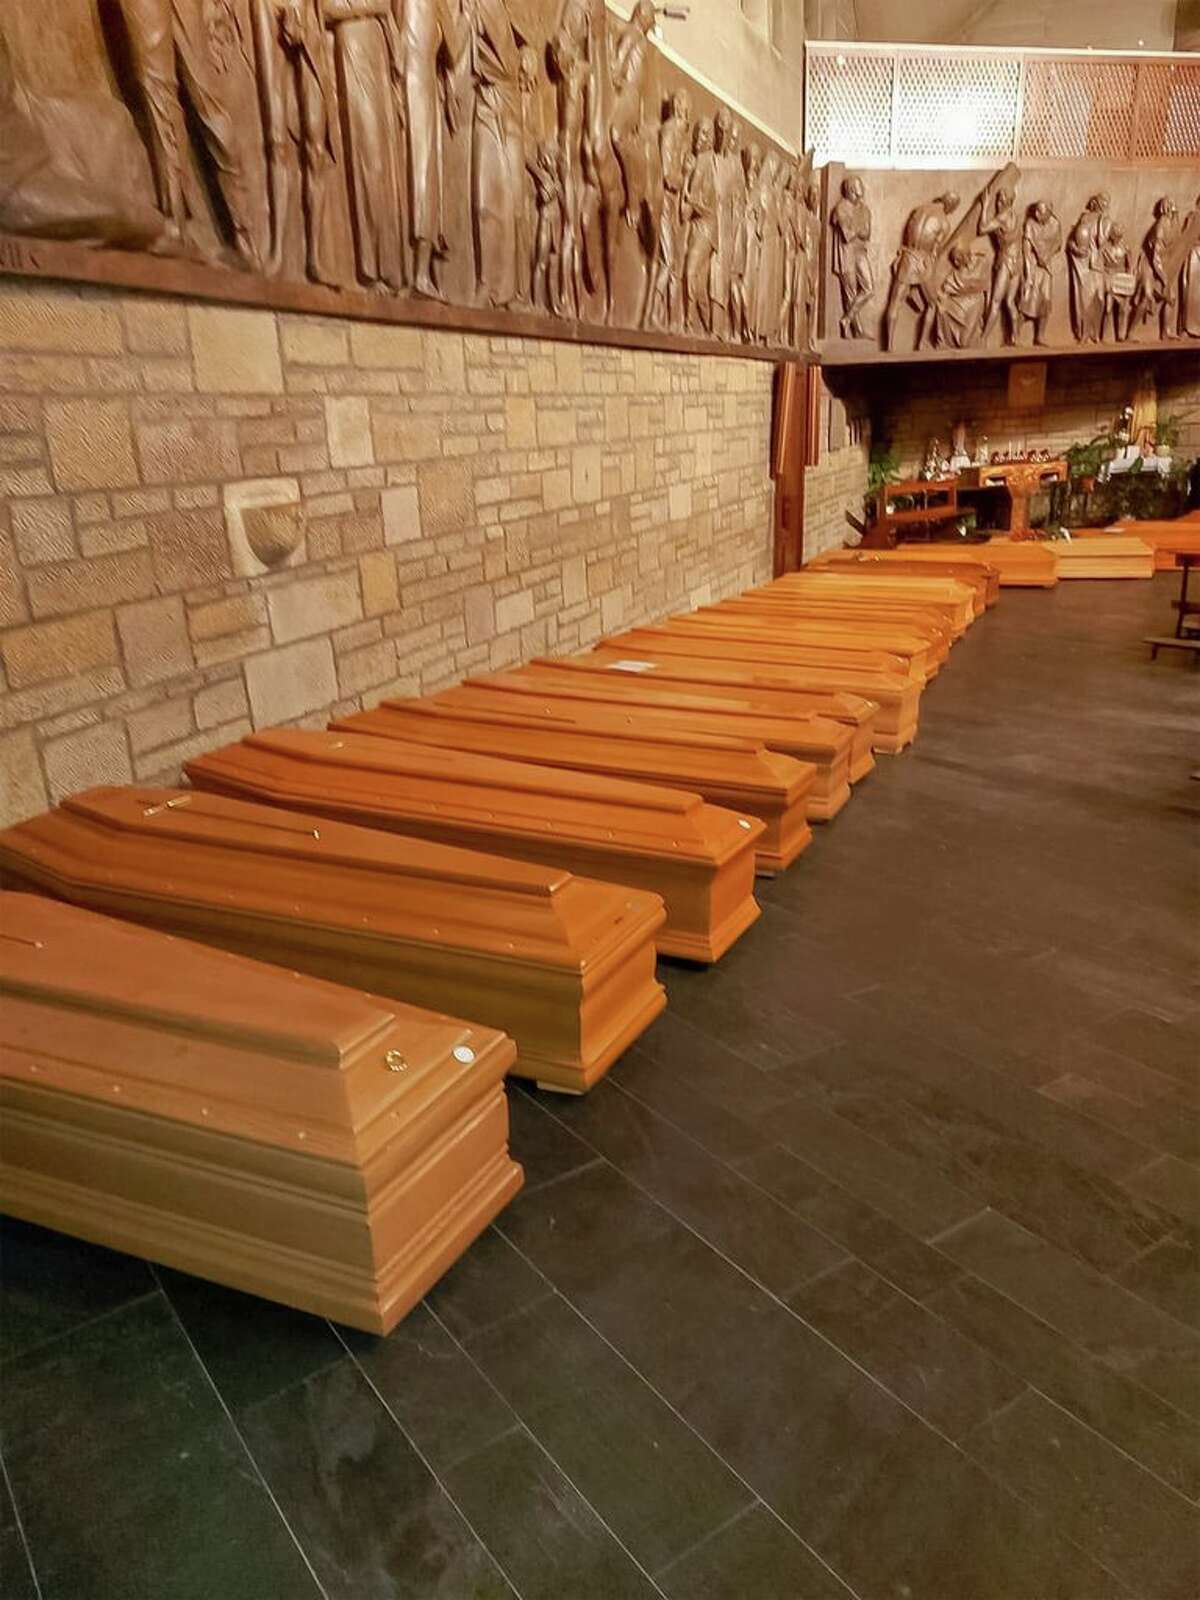 This photo provided by Italian news agency ANSA on March 19, 2020 shows coffins aligned in a chapel in Bergamo, Lombardy on March 18, 2020 prior to being transported for cremation.